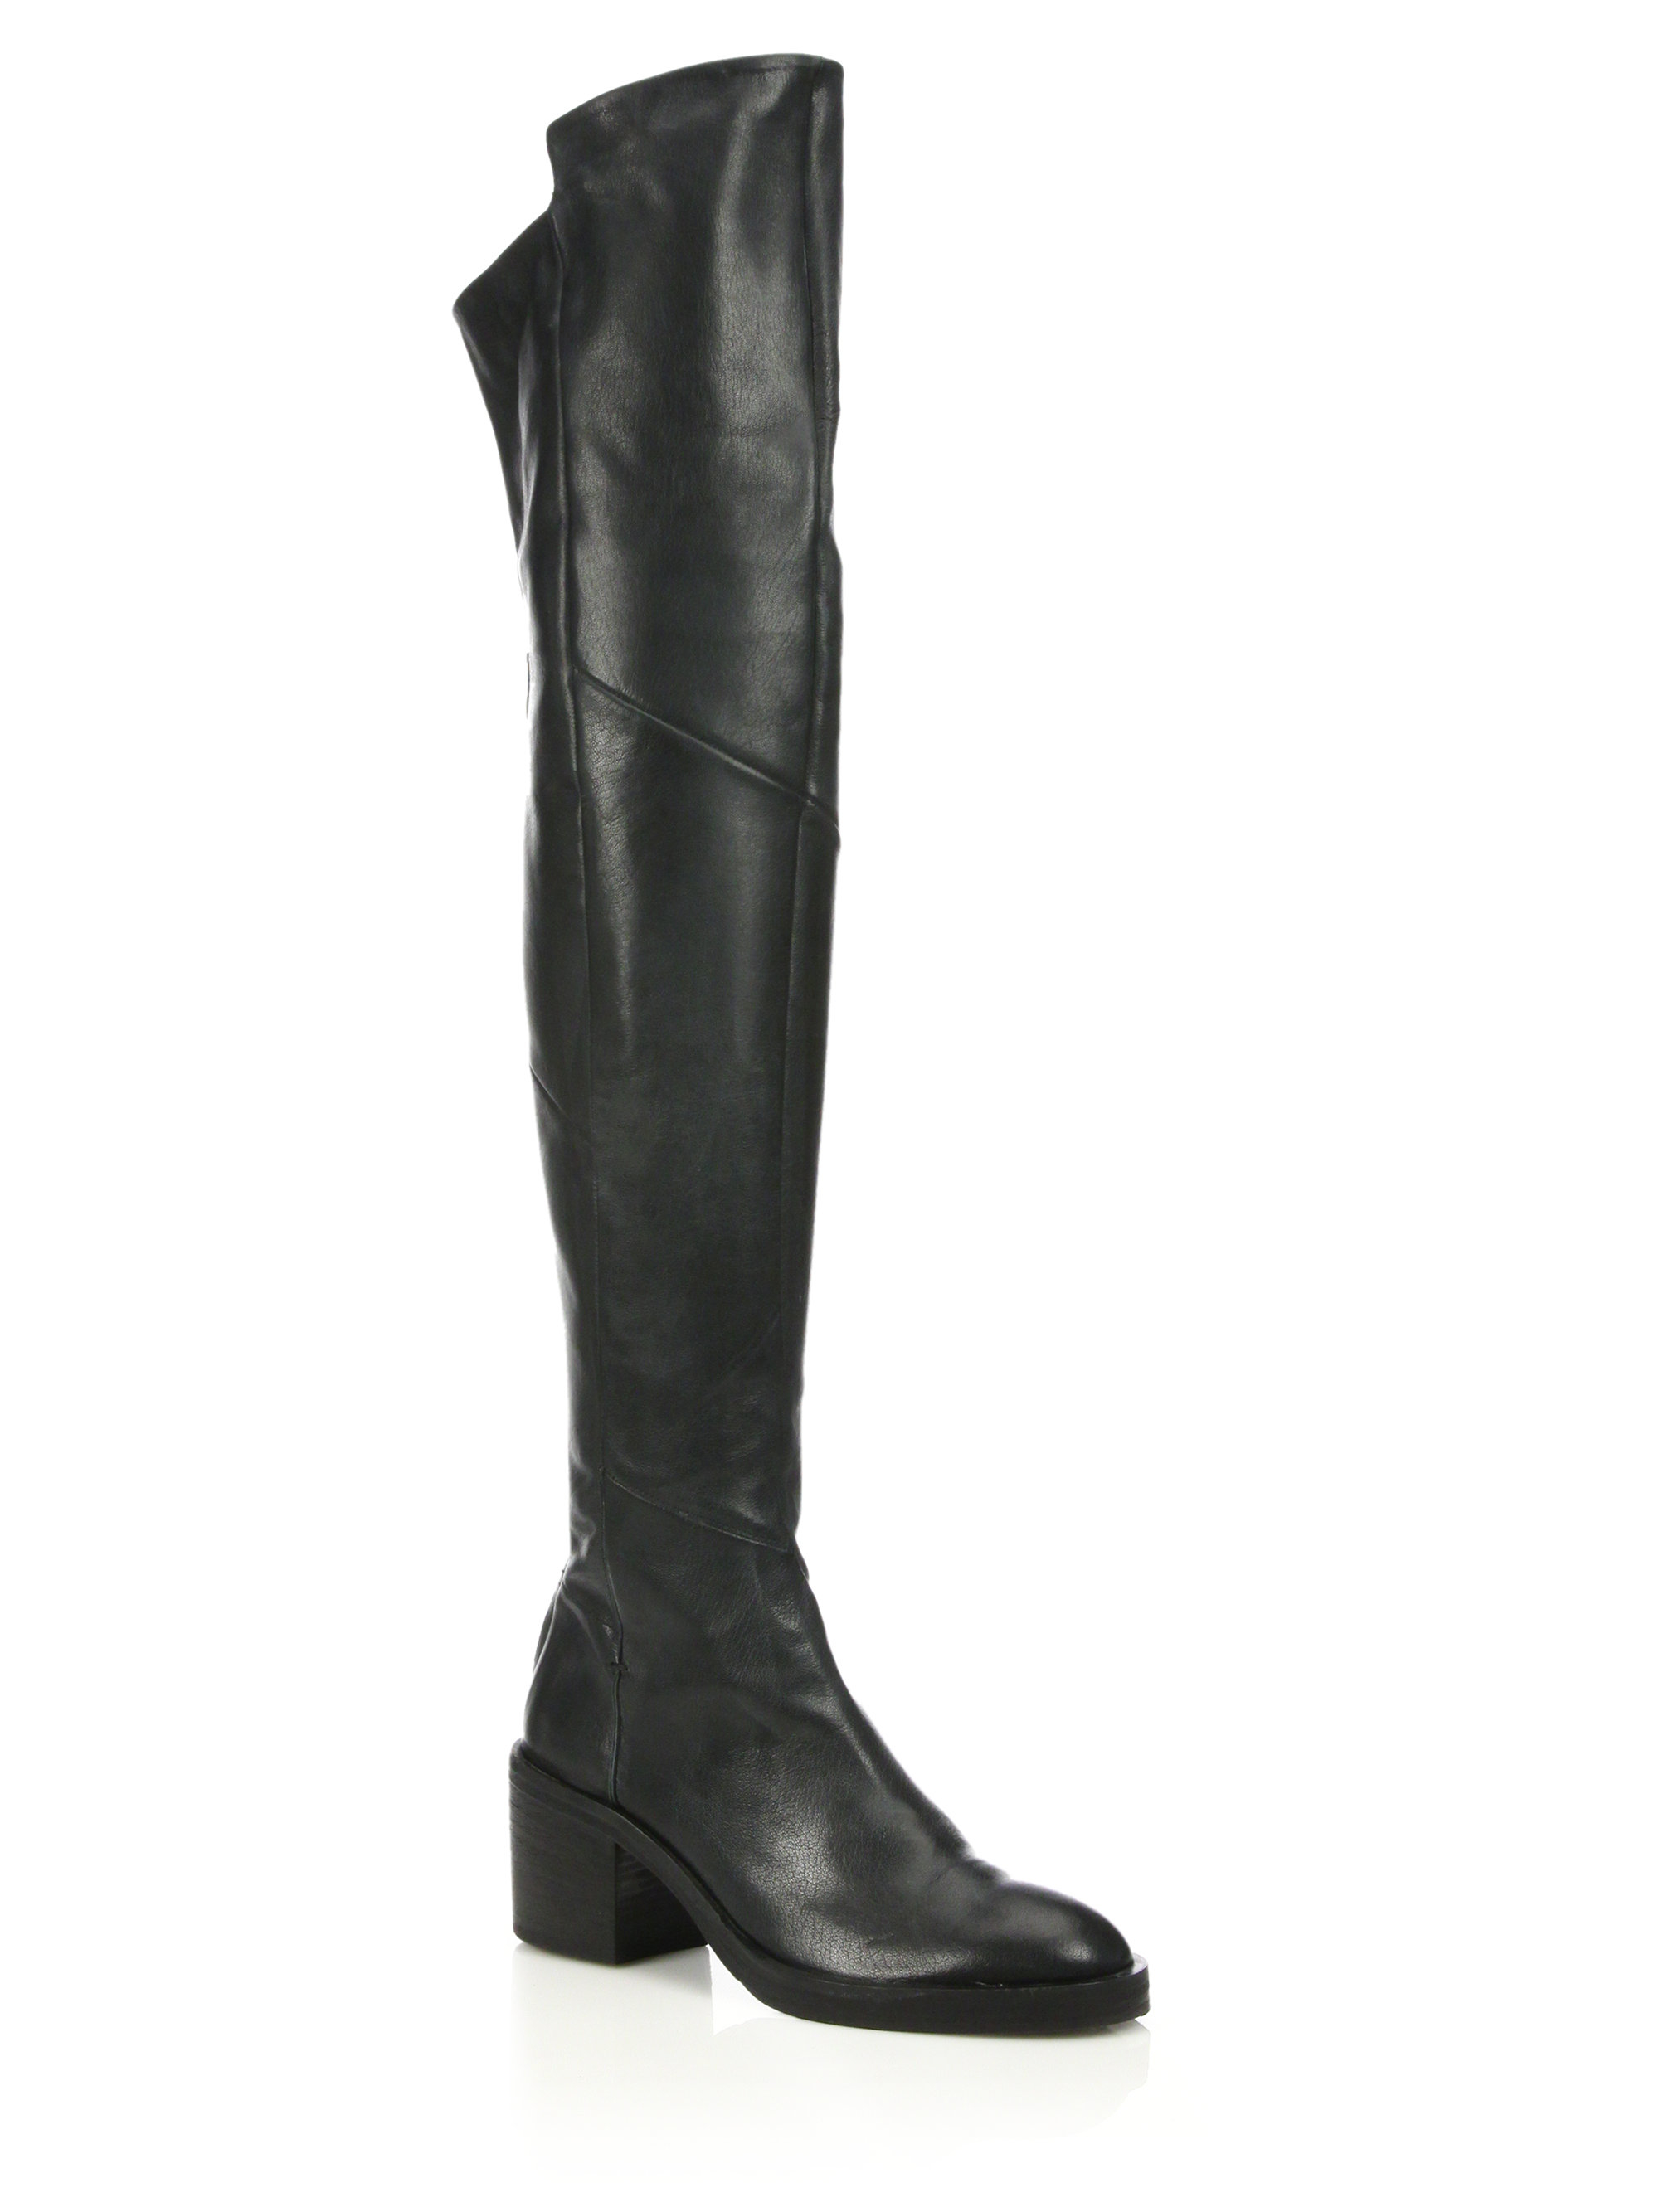 sale get to buy in China cheap online Alberto Fermani Leather Over-The-Knee Boots free shipping new amazing price cheap price zc4lSMW6ND